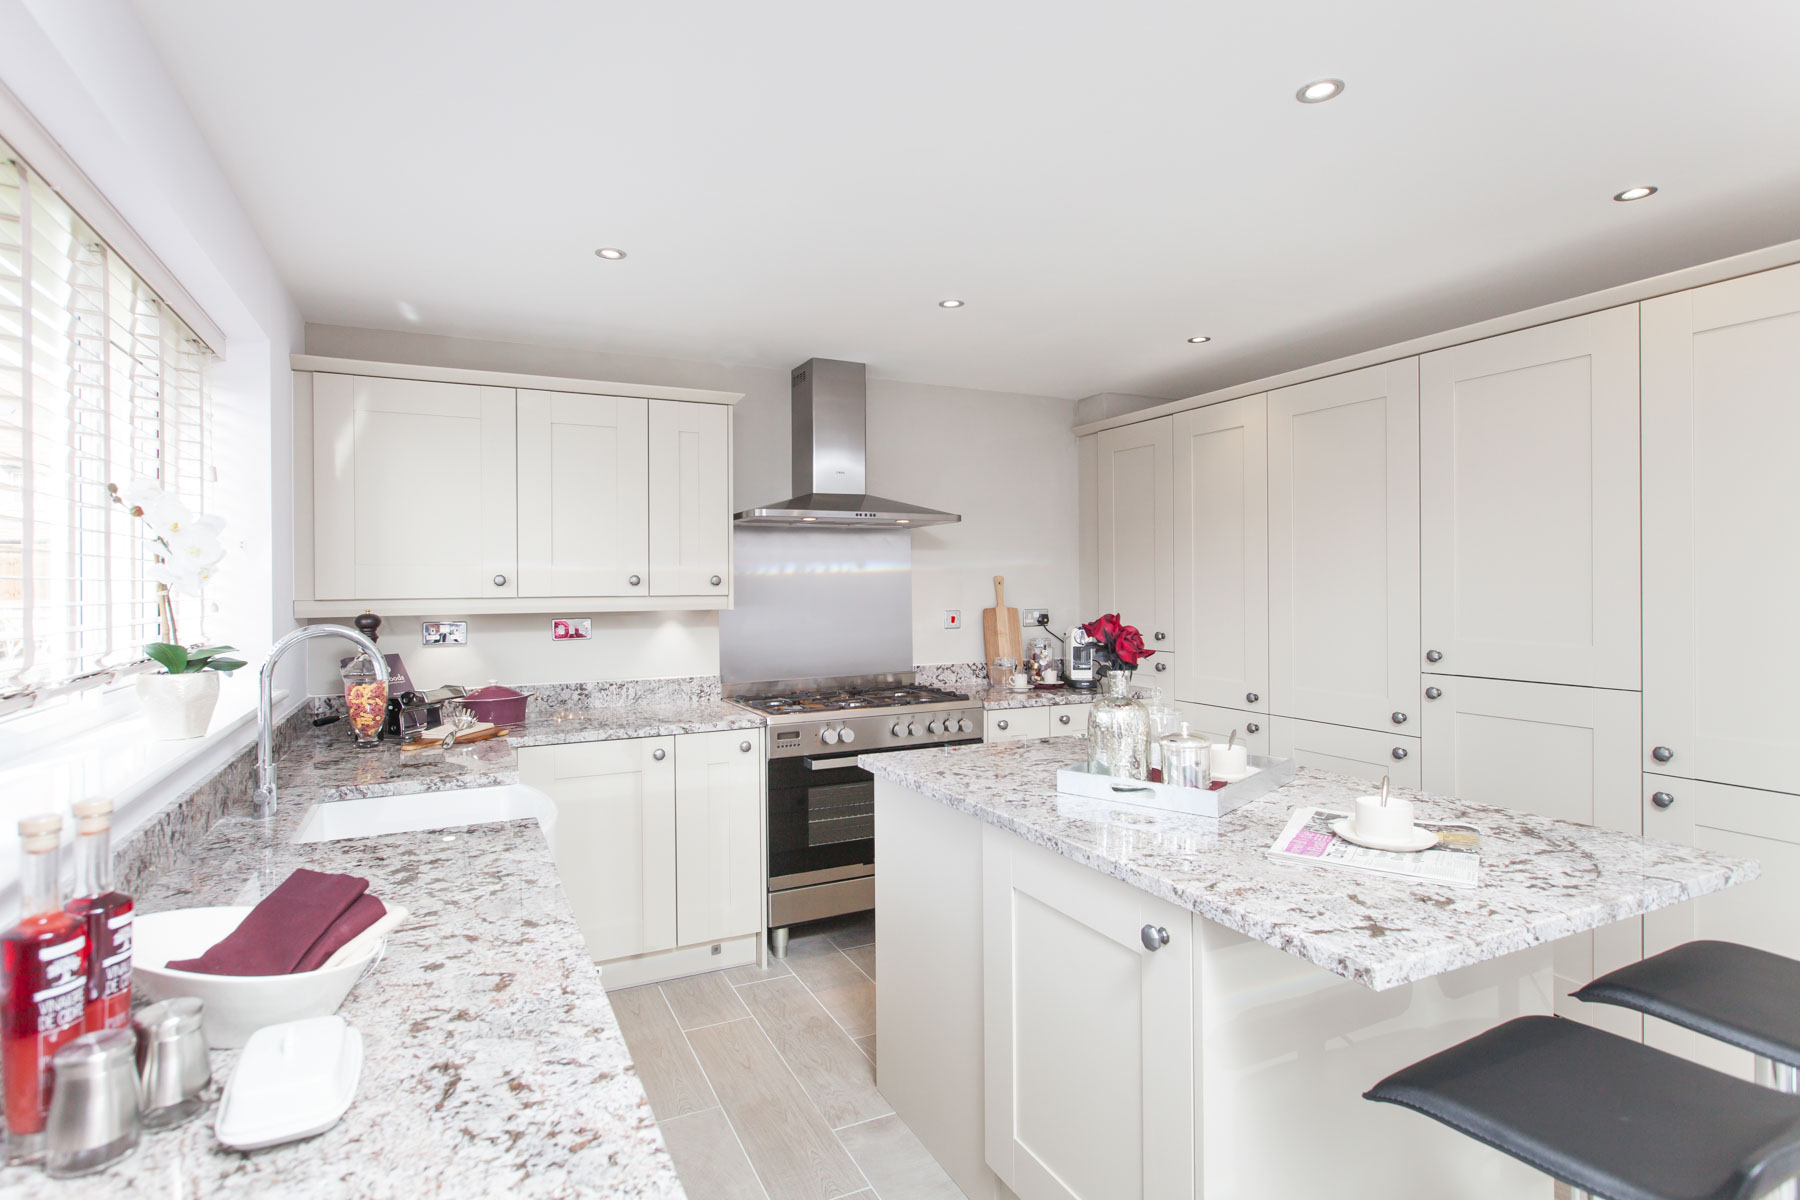 TW Yorkshire_The_Wickets_PD411_Haddenham_Kitchen_1